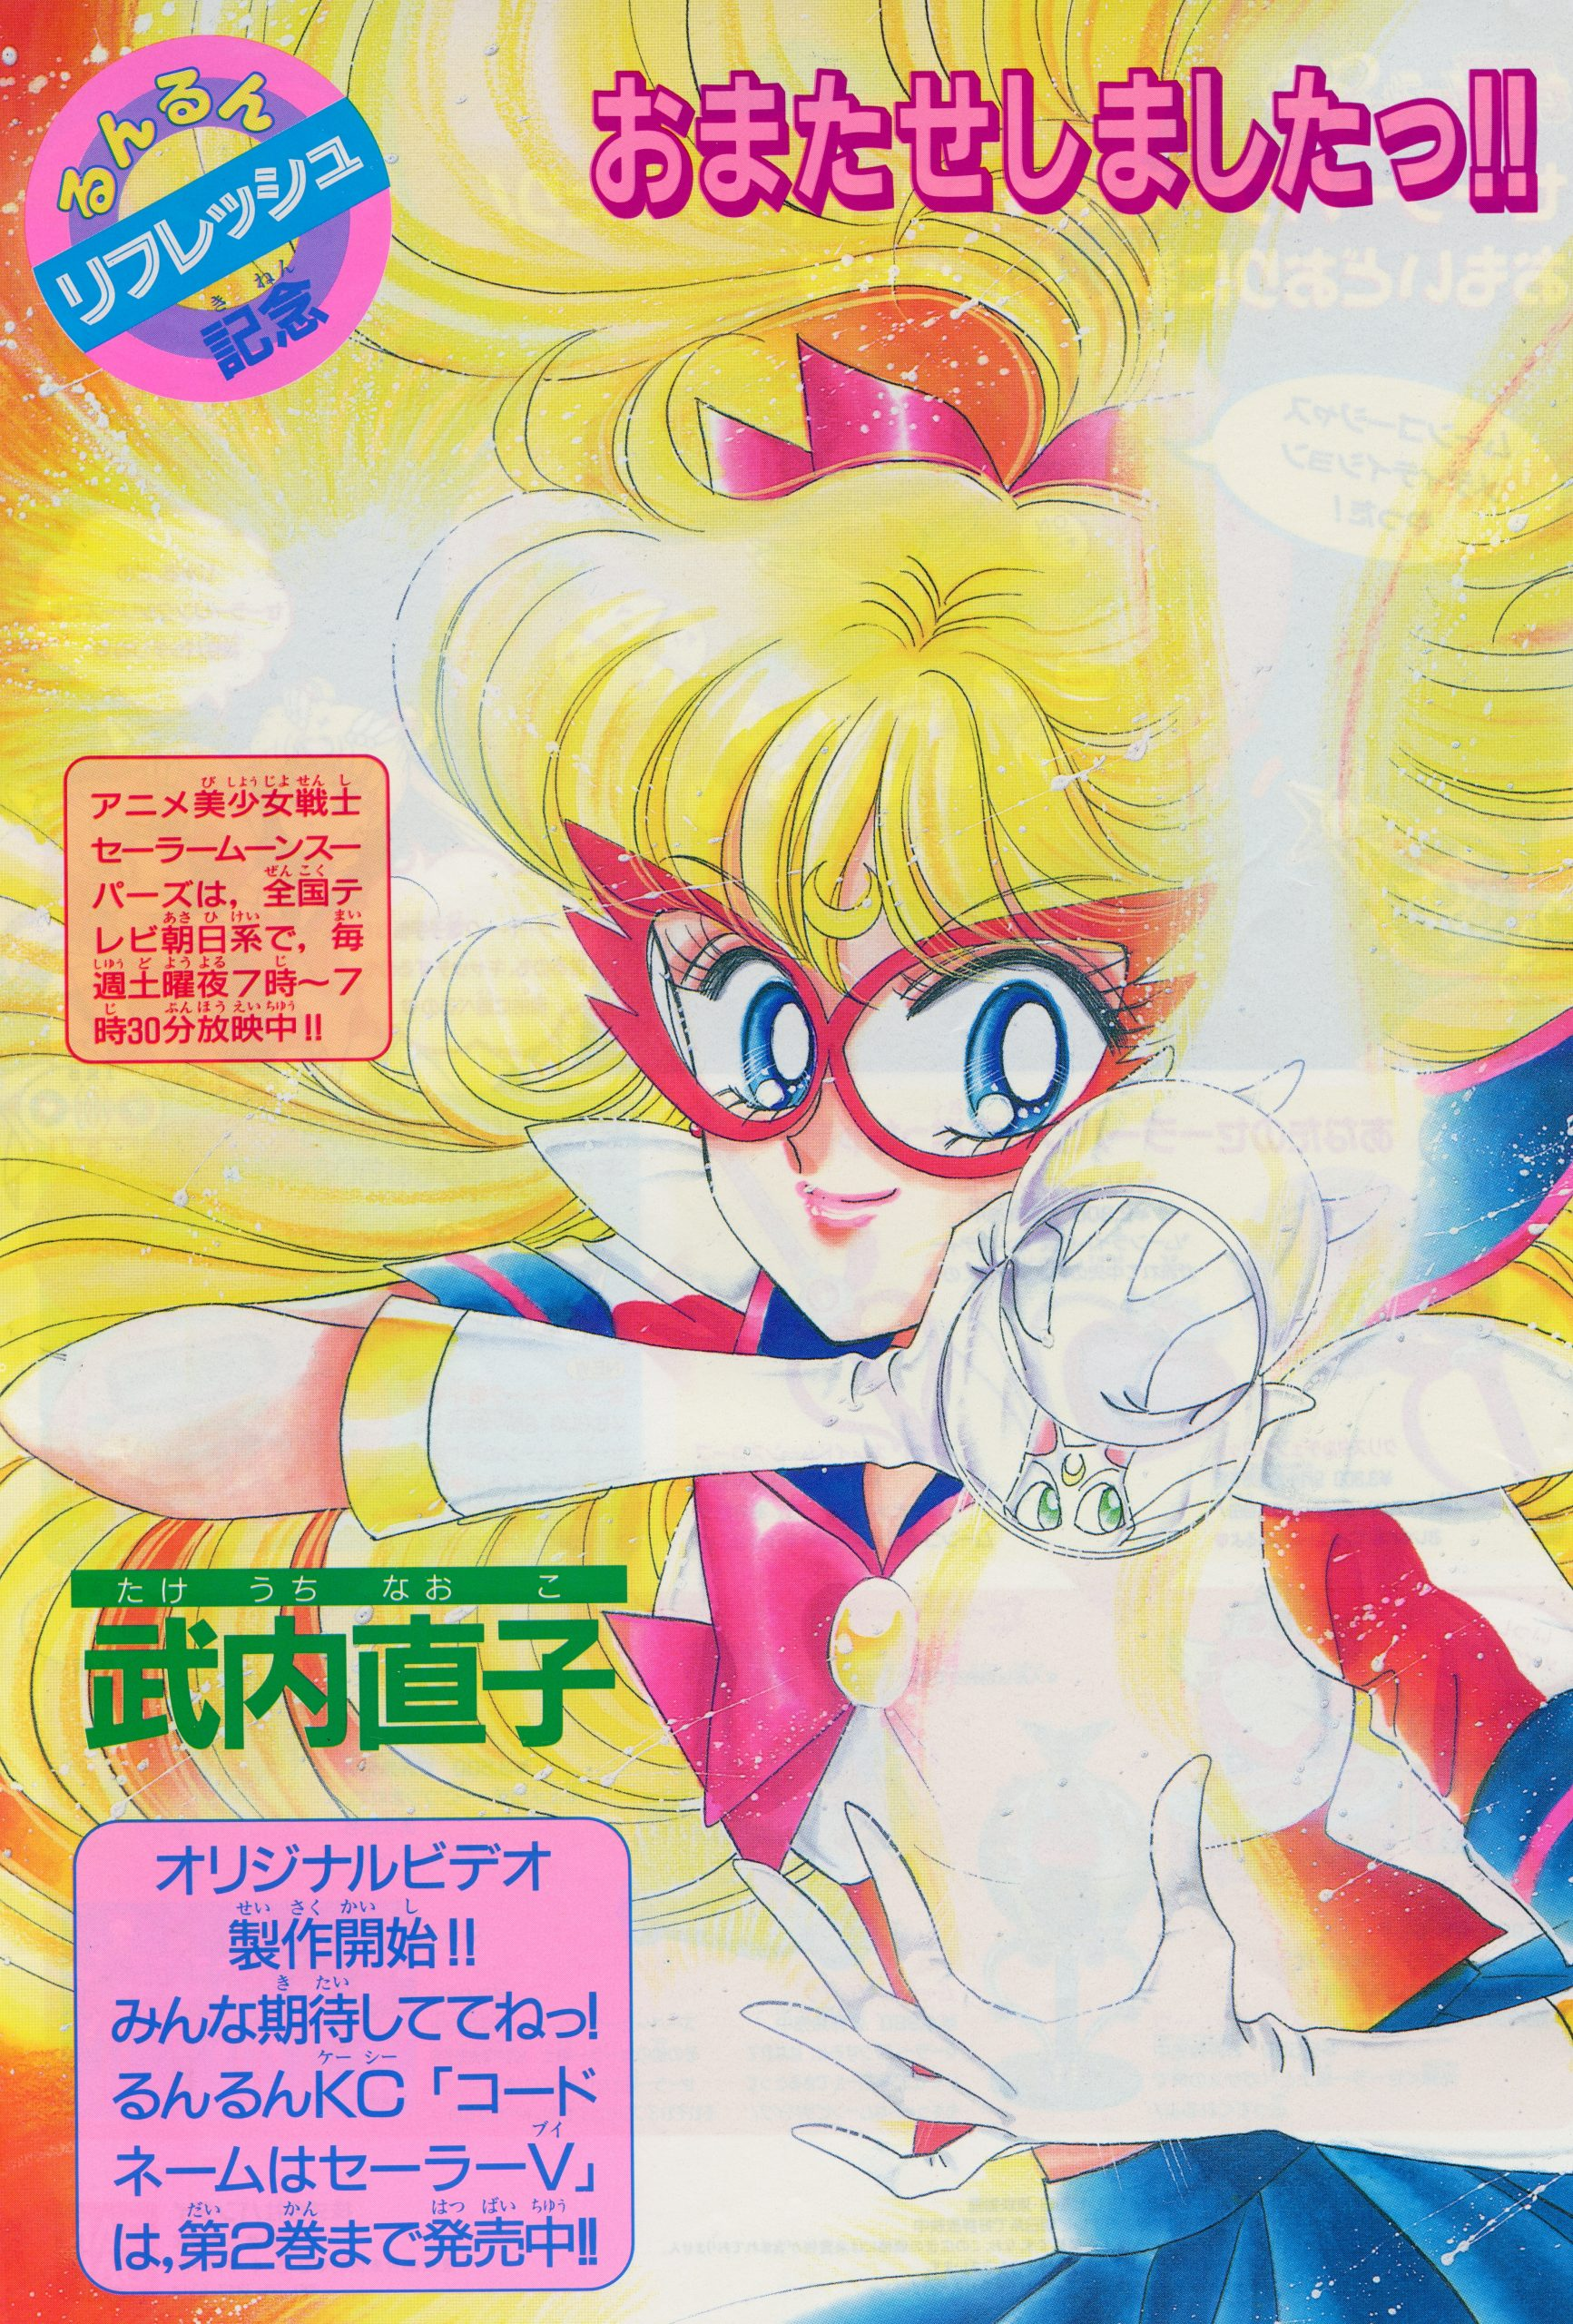 Codename Sailor V by Naoko Takeuchi in RunRun September 1995